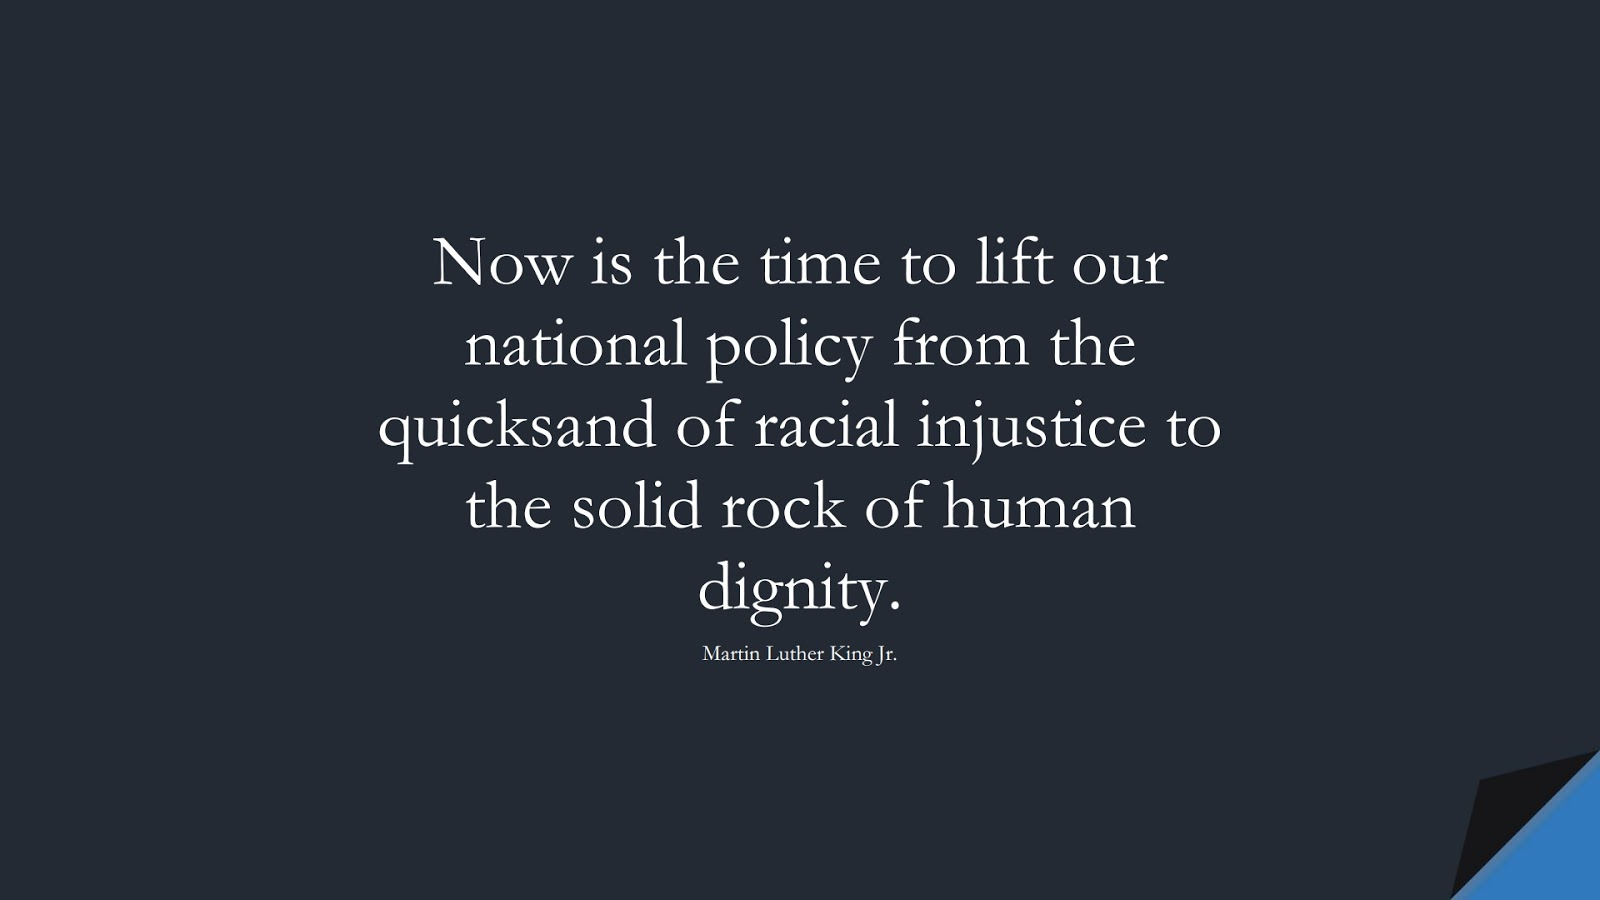 Now is the time to lift our national policy from the quicksand of racial injustice to the solid rock of human dignity. (Martin Luther King Jr.);  #MartinLutherKingJrQuotes